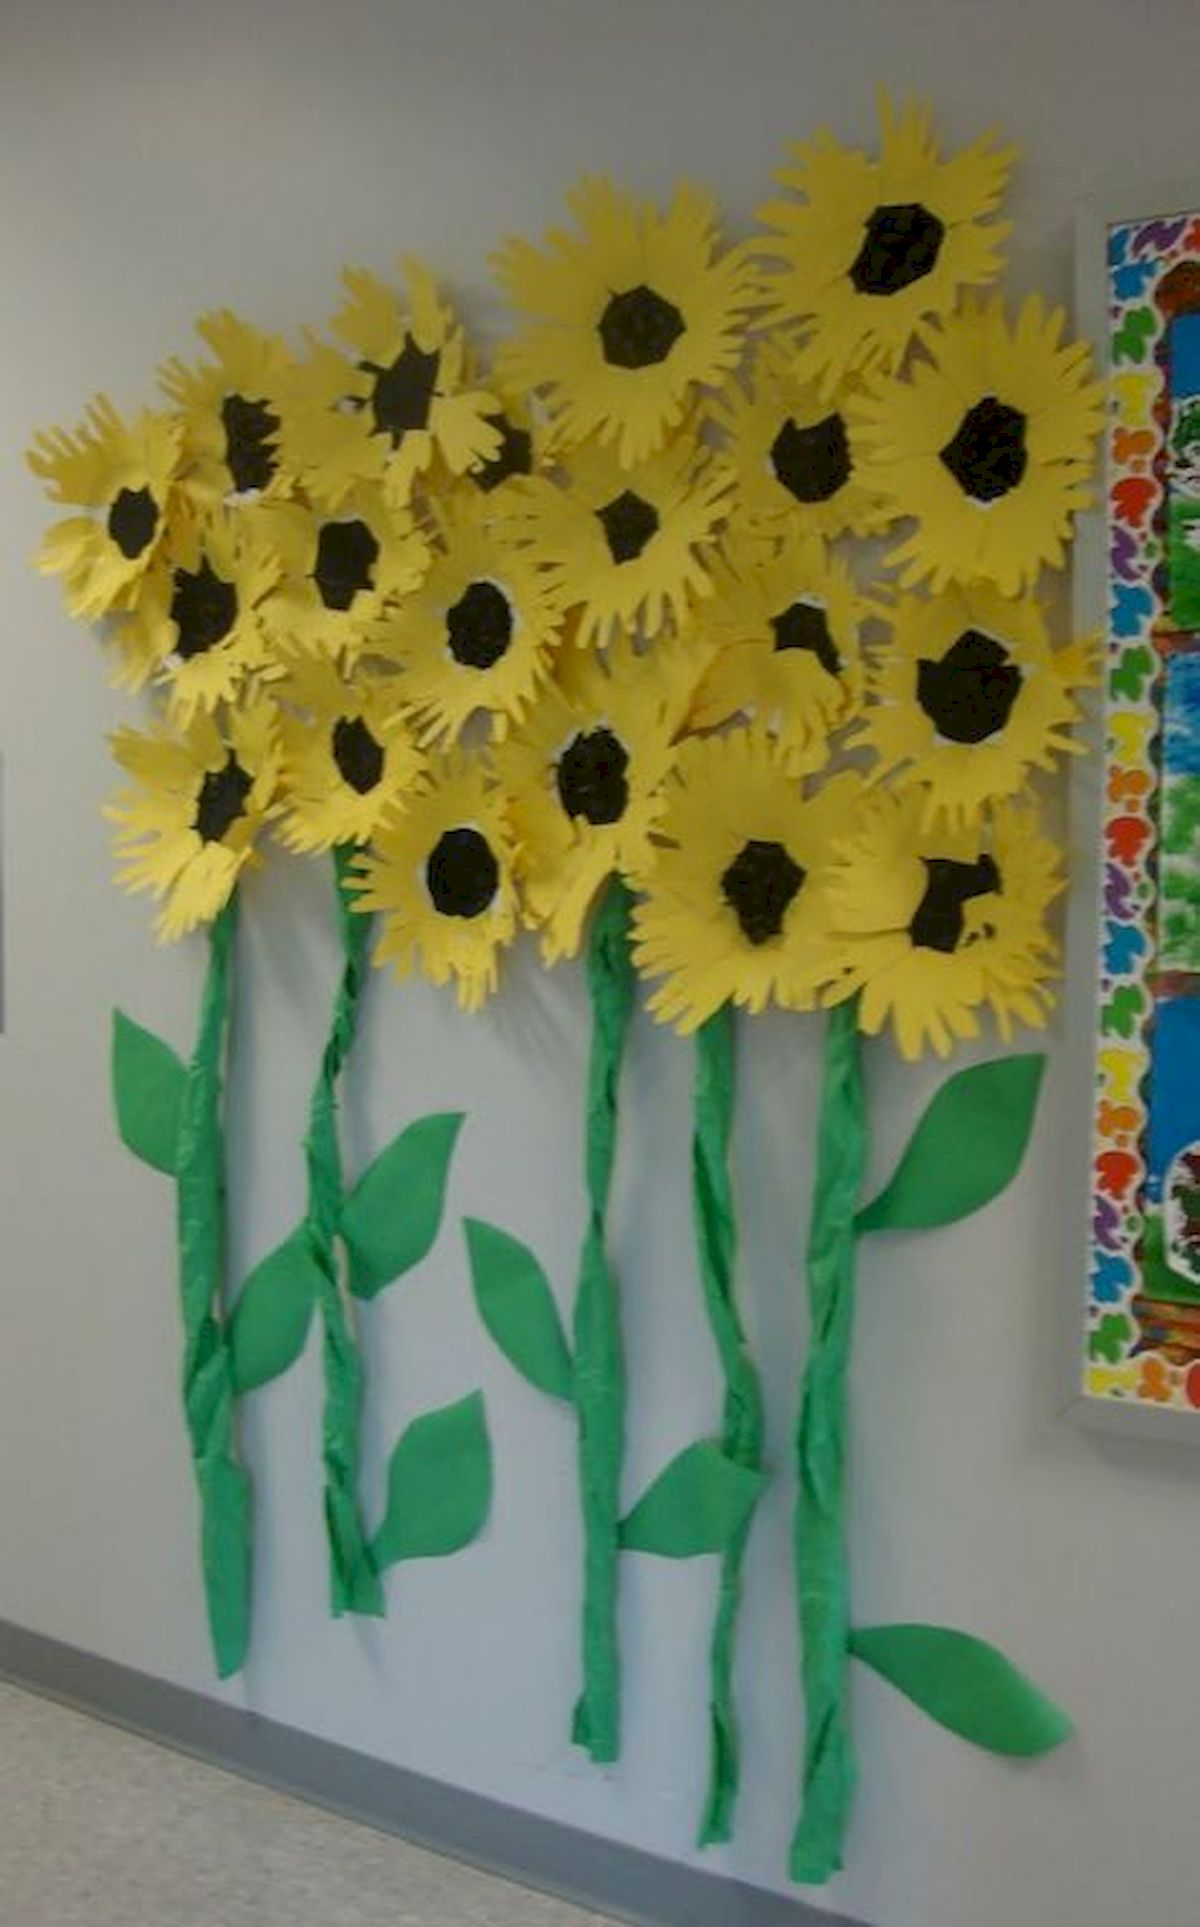 40 Easy But Awesome DIY Crafts Ideas For Kids (29)